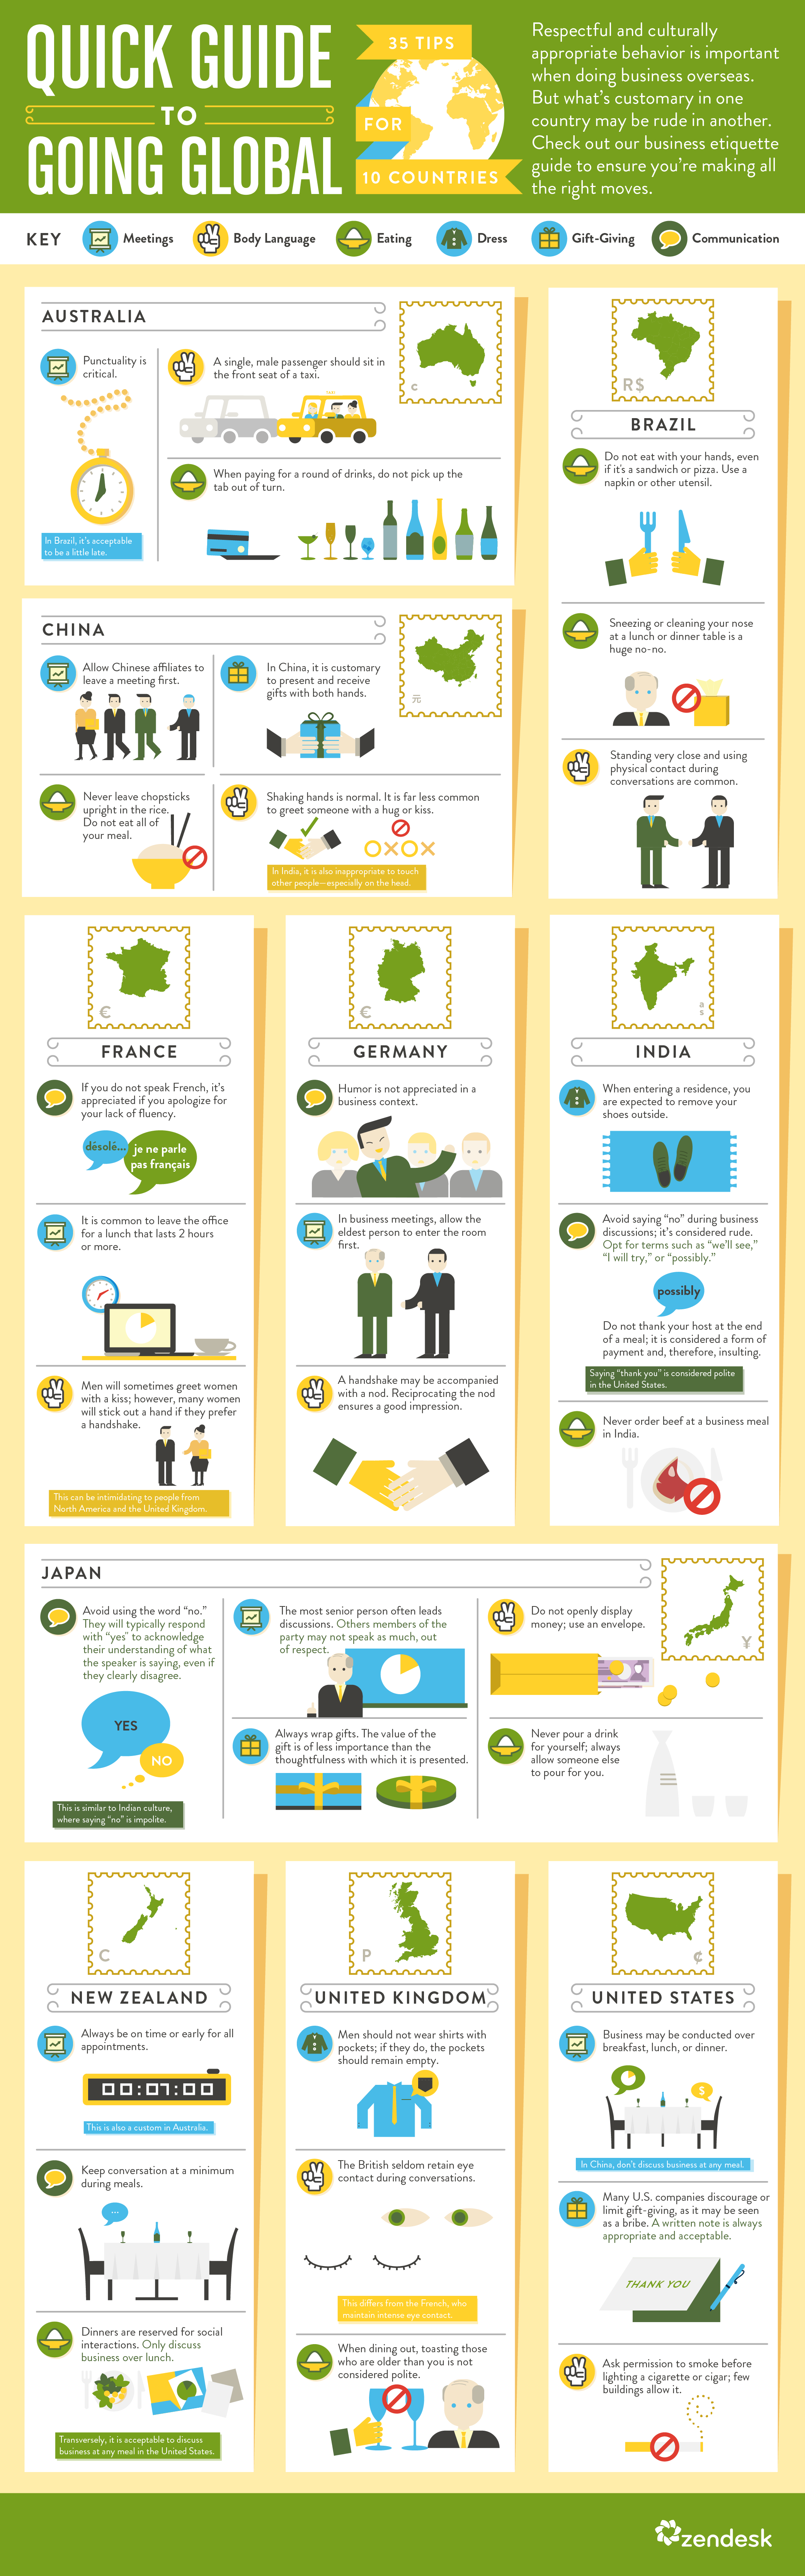 Global Manners - Zendesk infographic